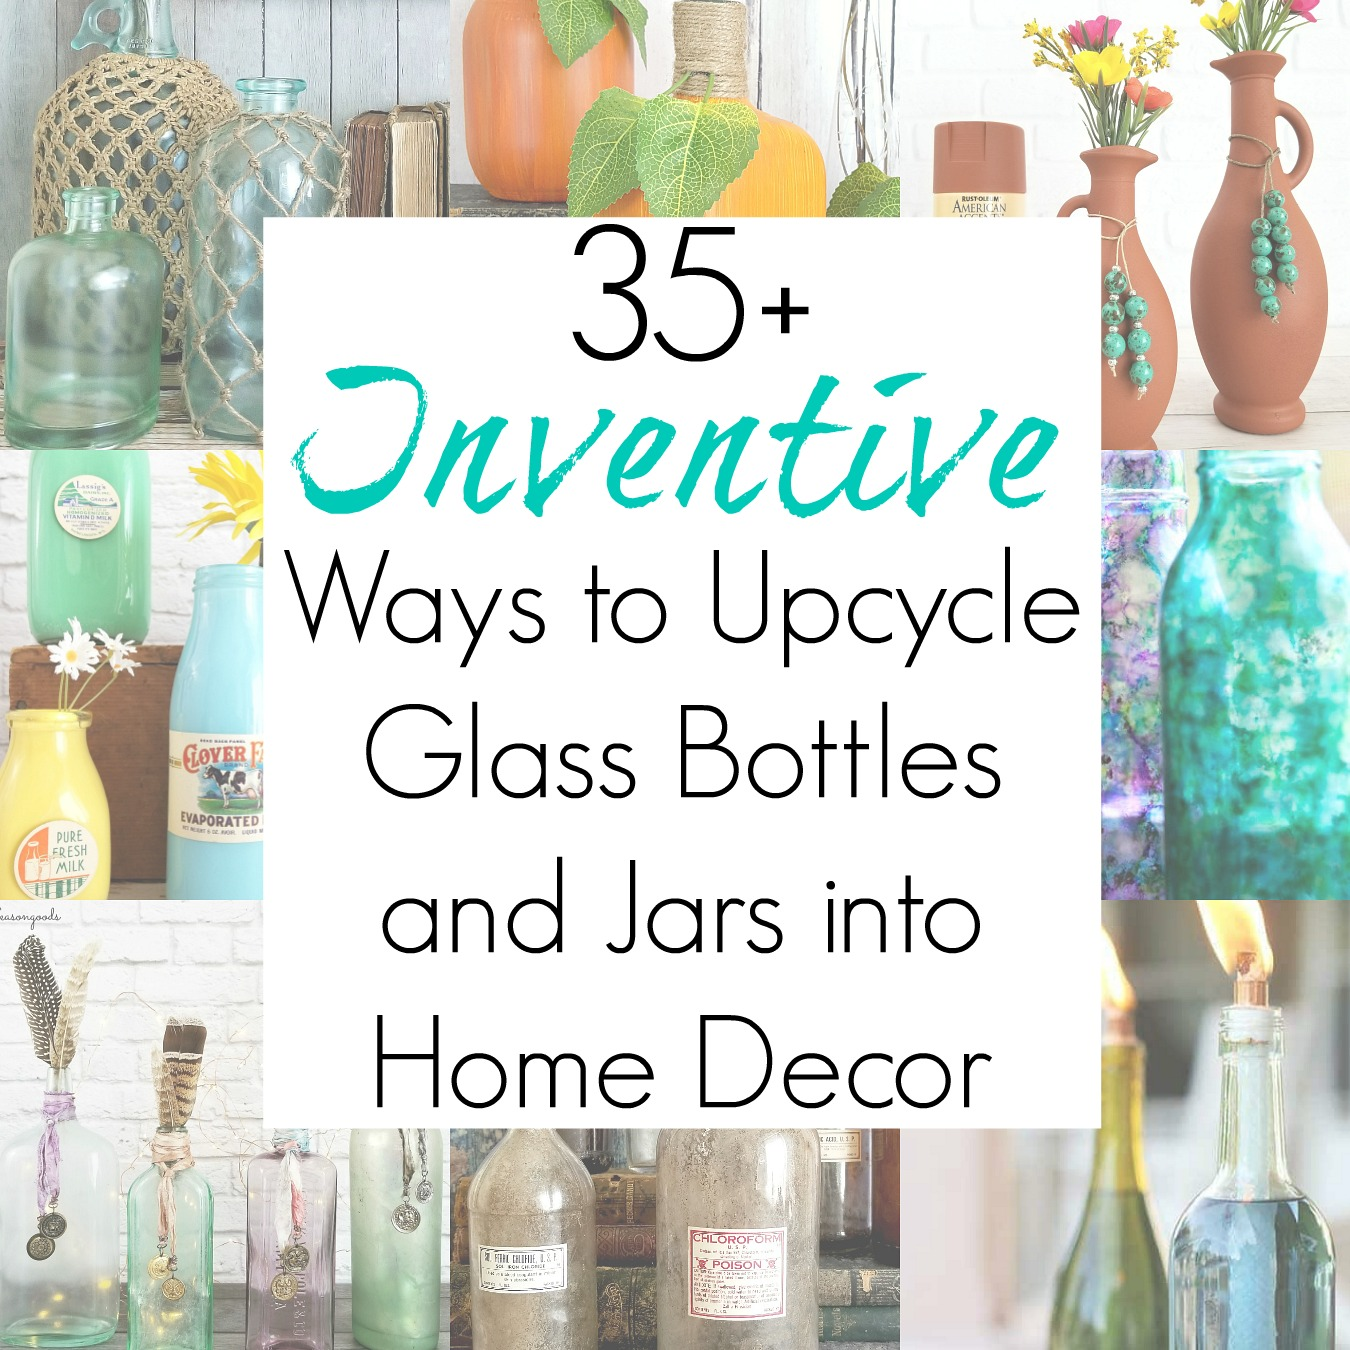 35+ Glass Bottle Crafts from Your Recycling Bin